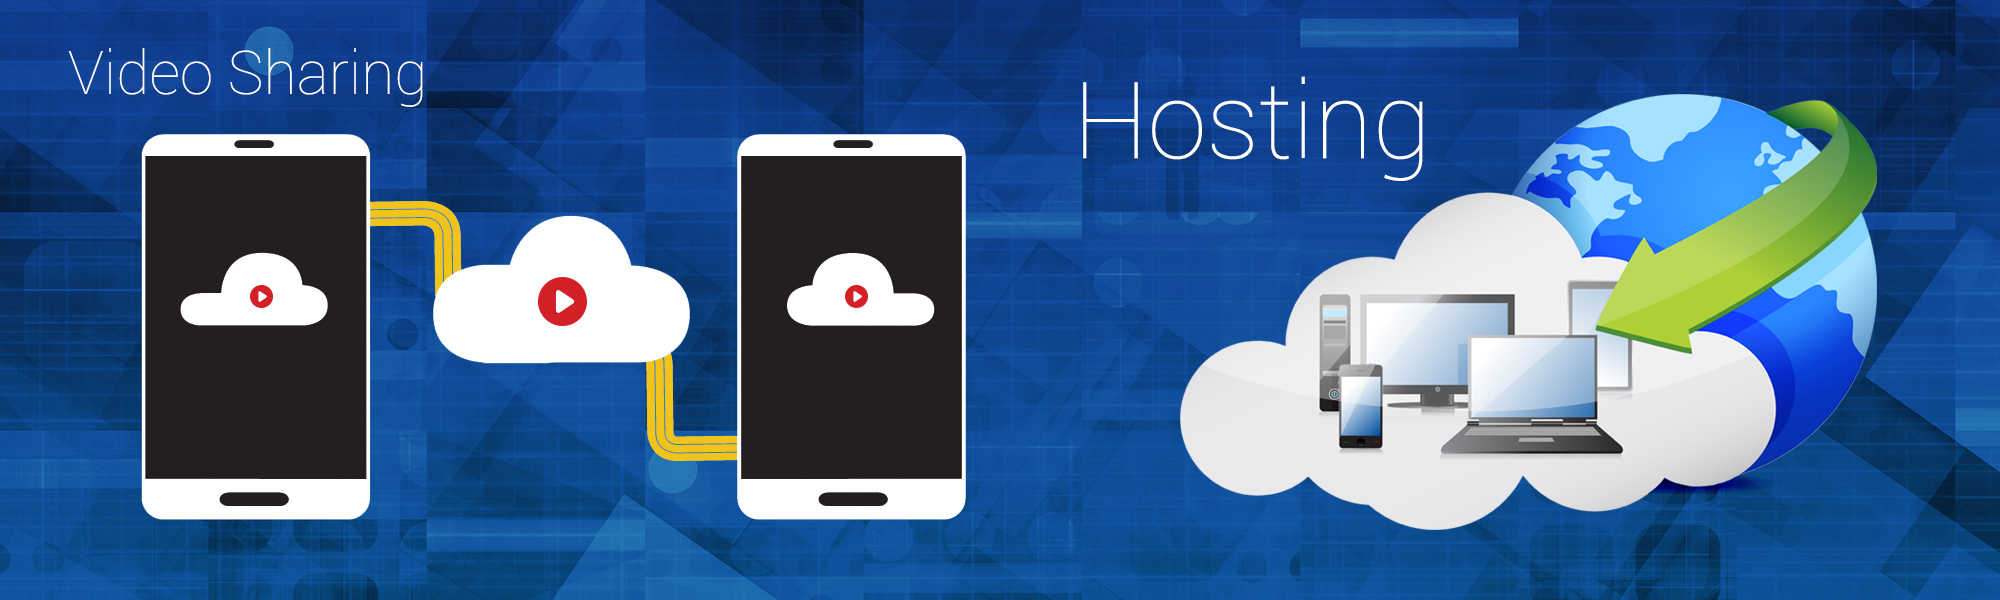 Video-Sharing-Hosting-A